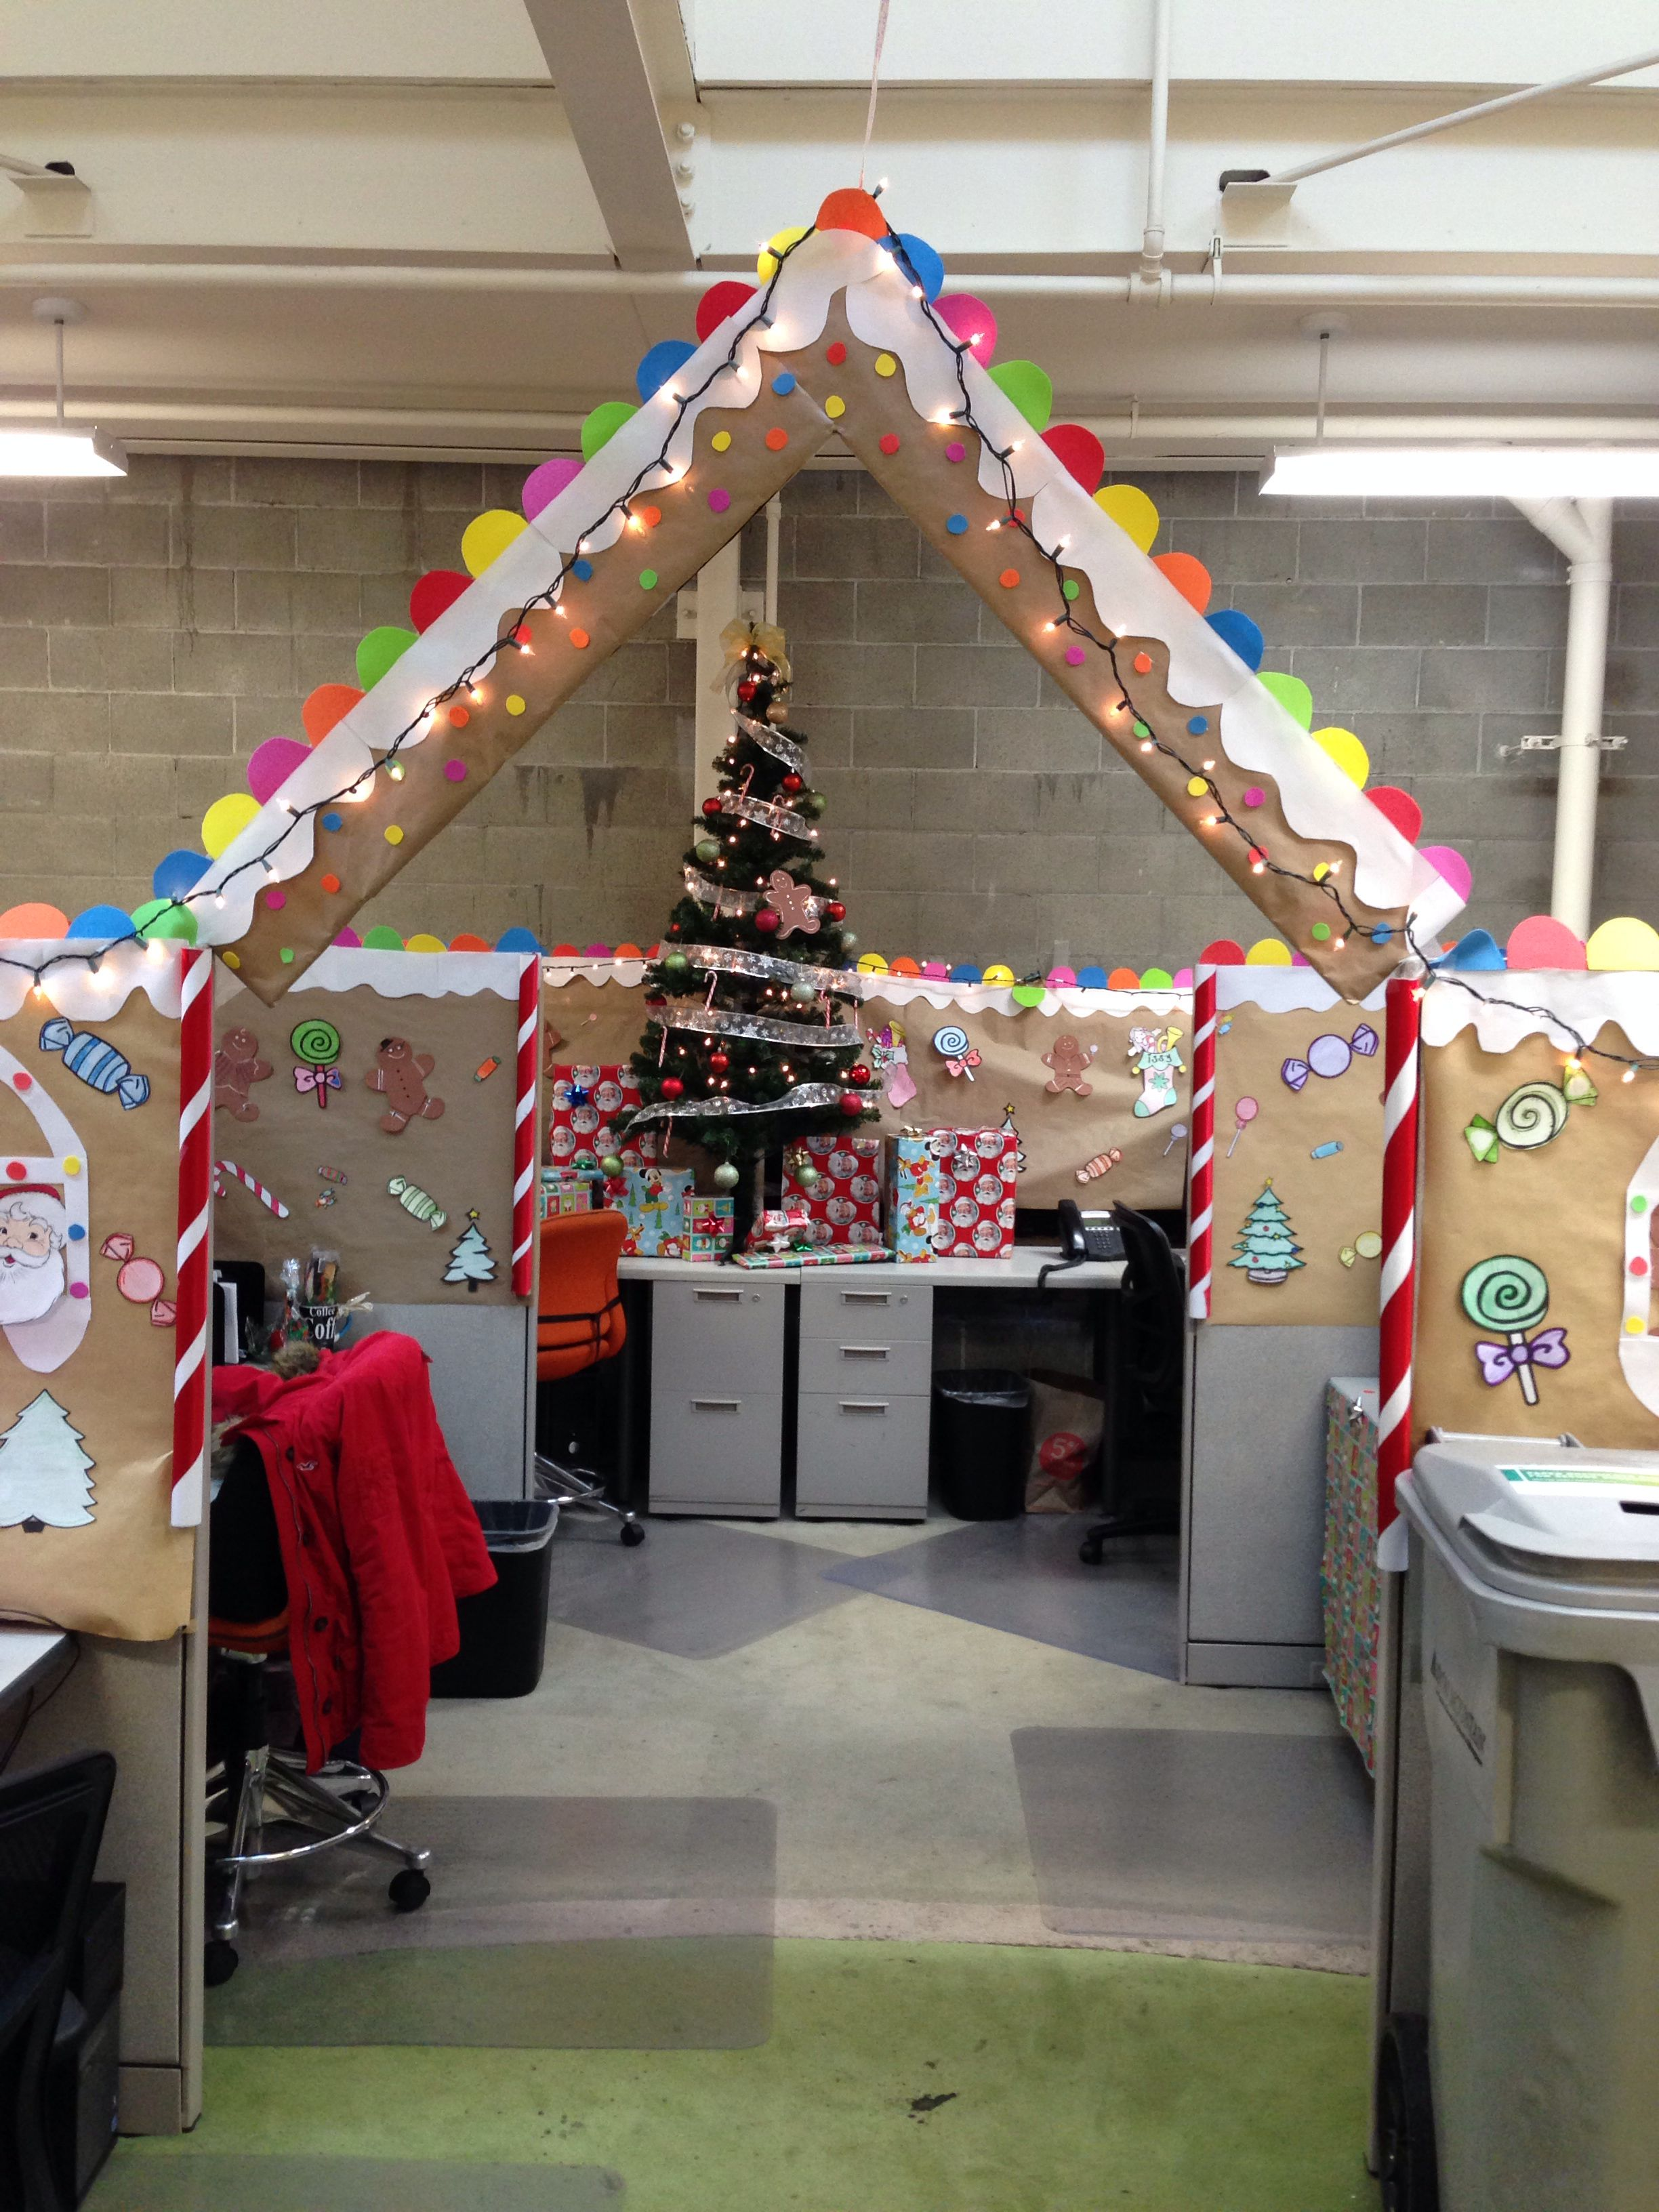 Gingerbread Cubical Decorating 1st Place Office Christmas Decorations Christmas Desk Decorations Office Christmas Party